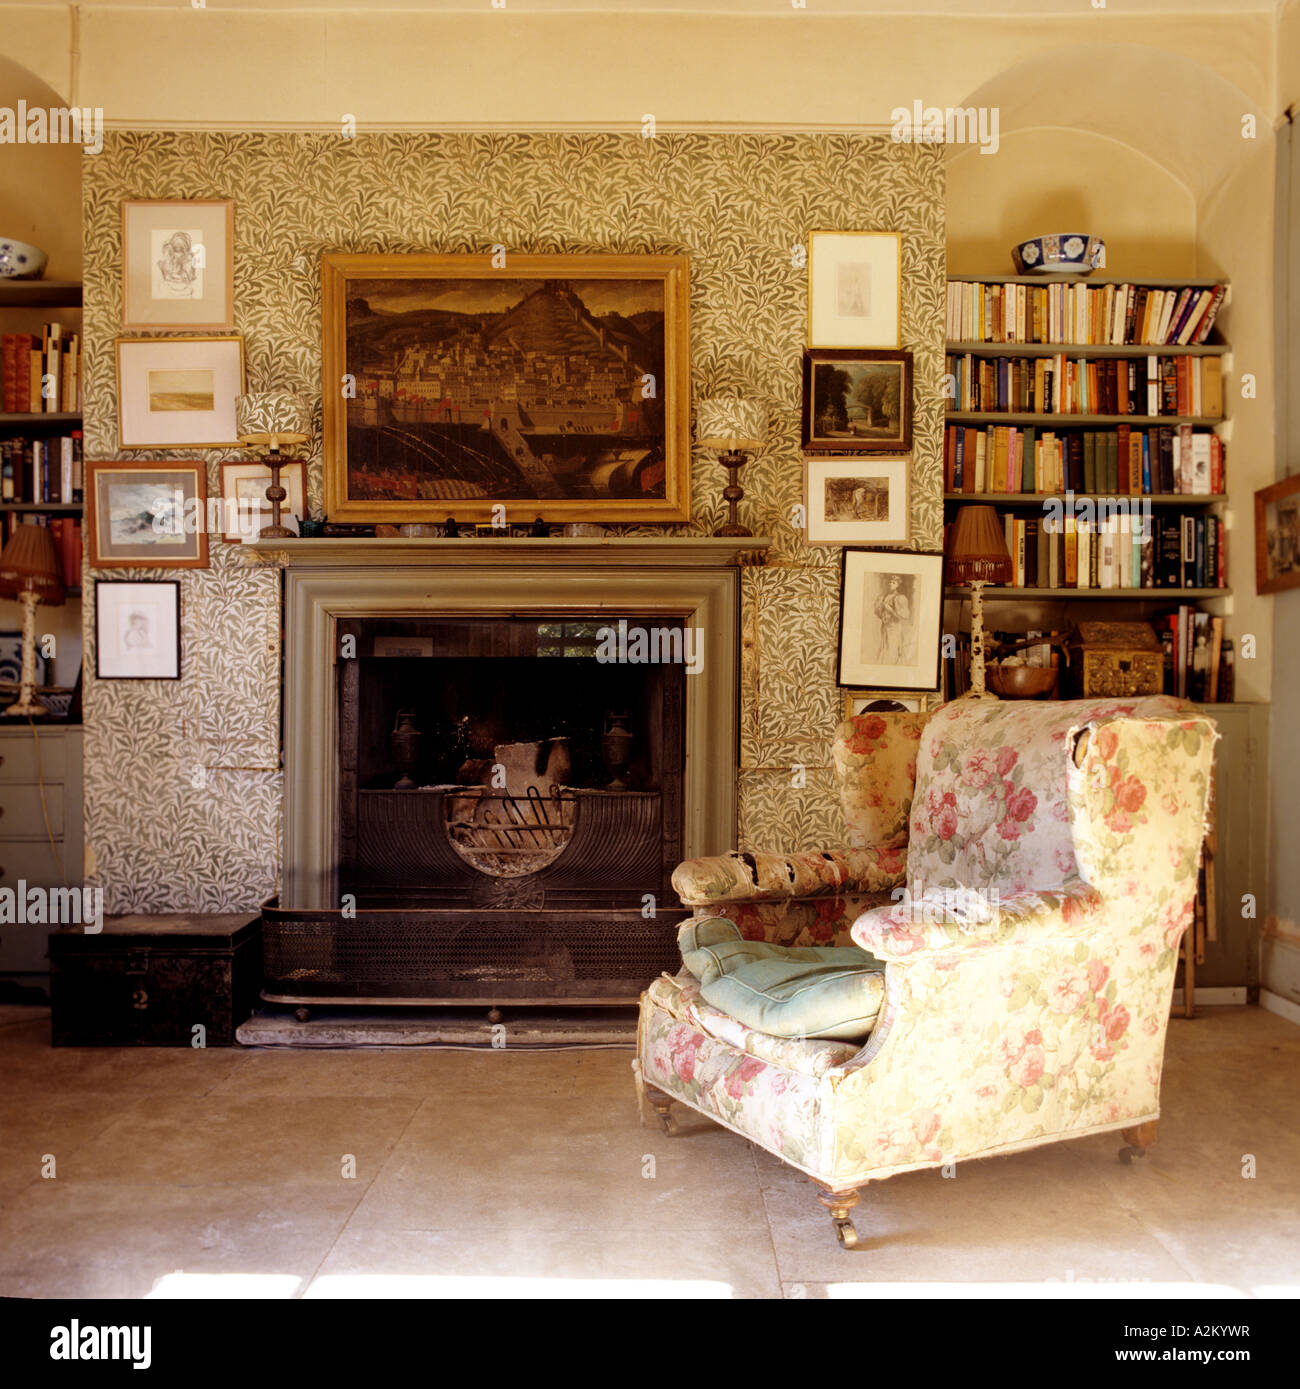 Floral Armchair In Living Room With William Morris Wallpaper